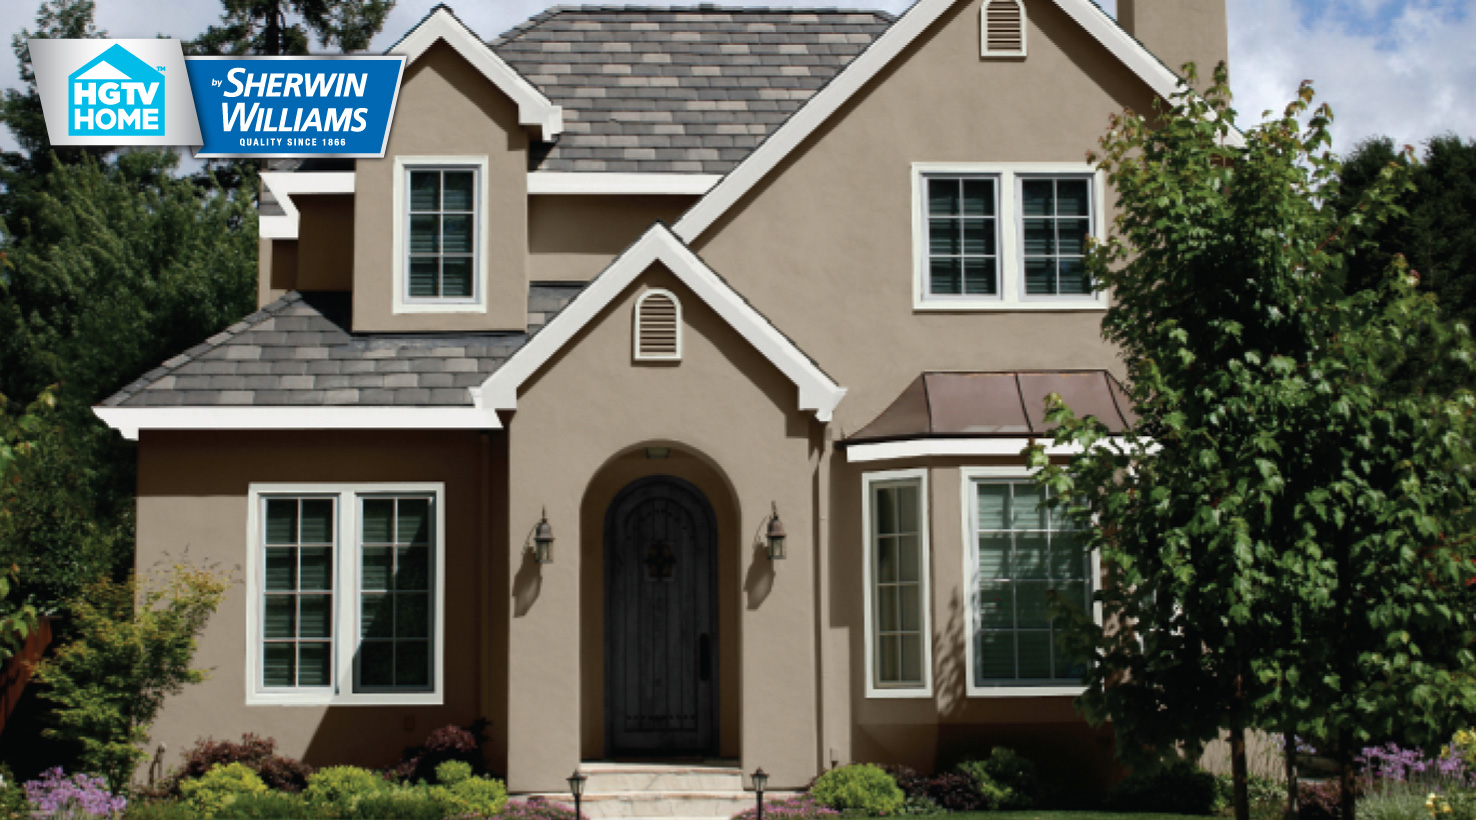 Home exterior wallpaper wallpaper home for Sherwin williams latte exterior paint